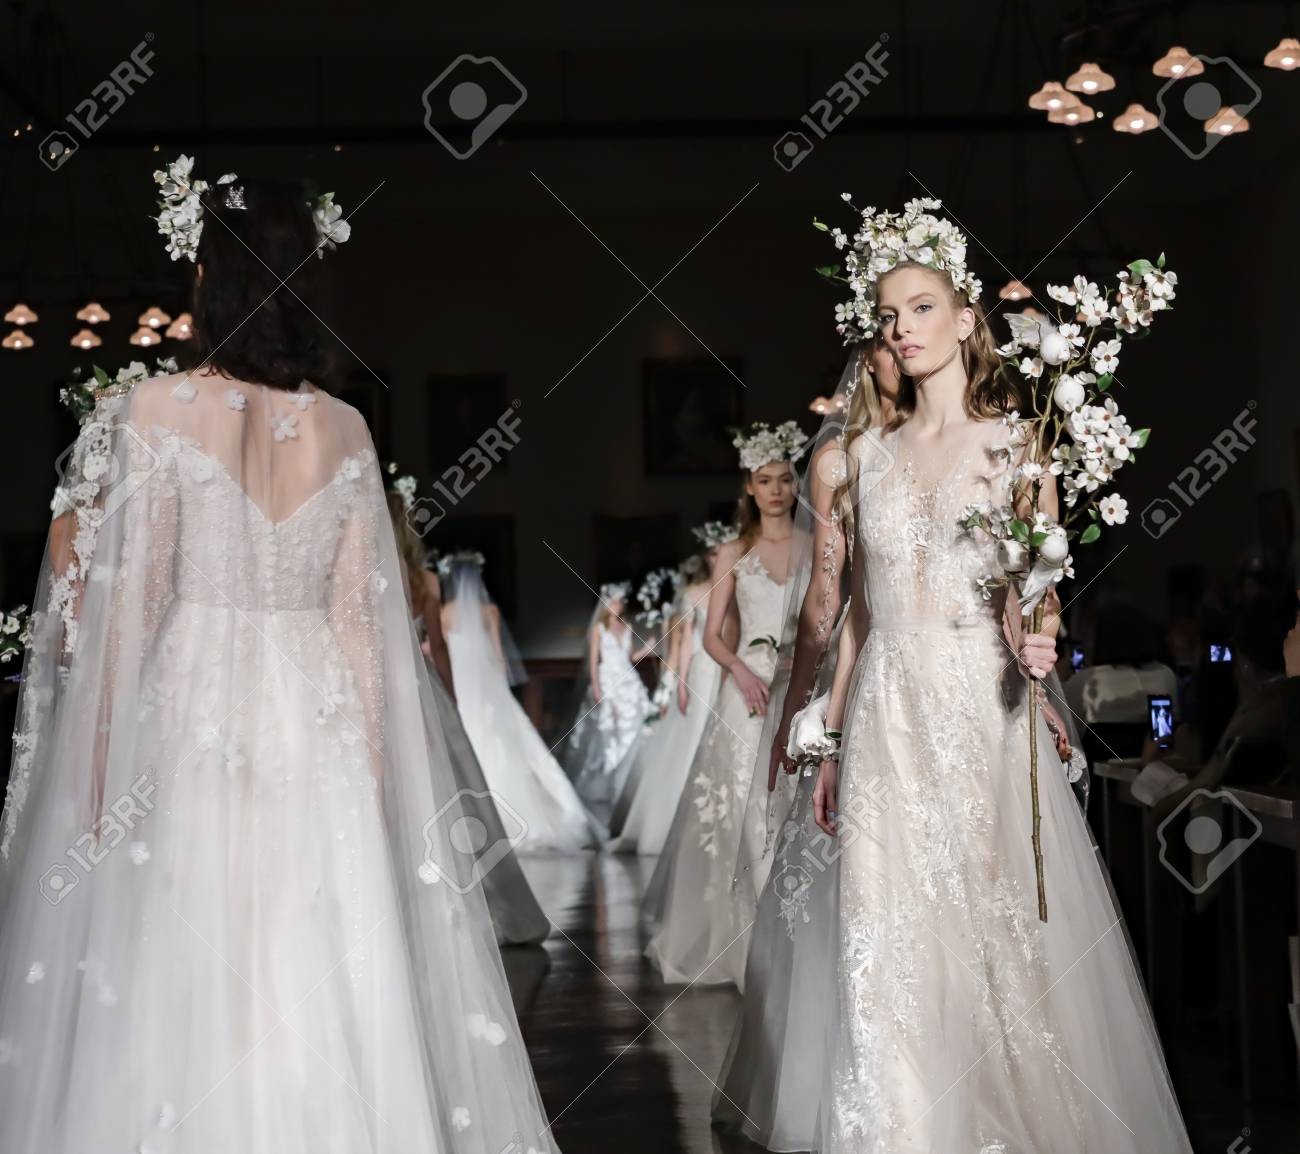 fbf1a59ceacc New York, NY, USA - April 12, 2018: Models Walk Runway For Reem ...